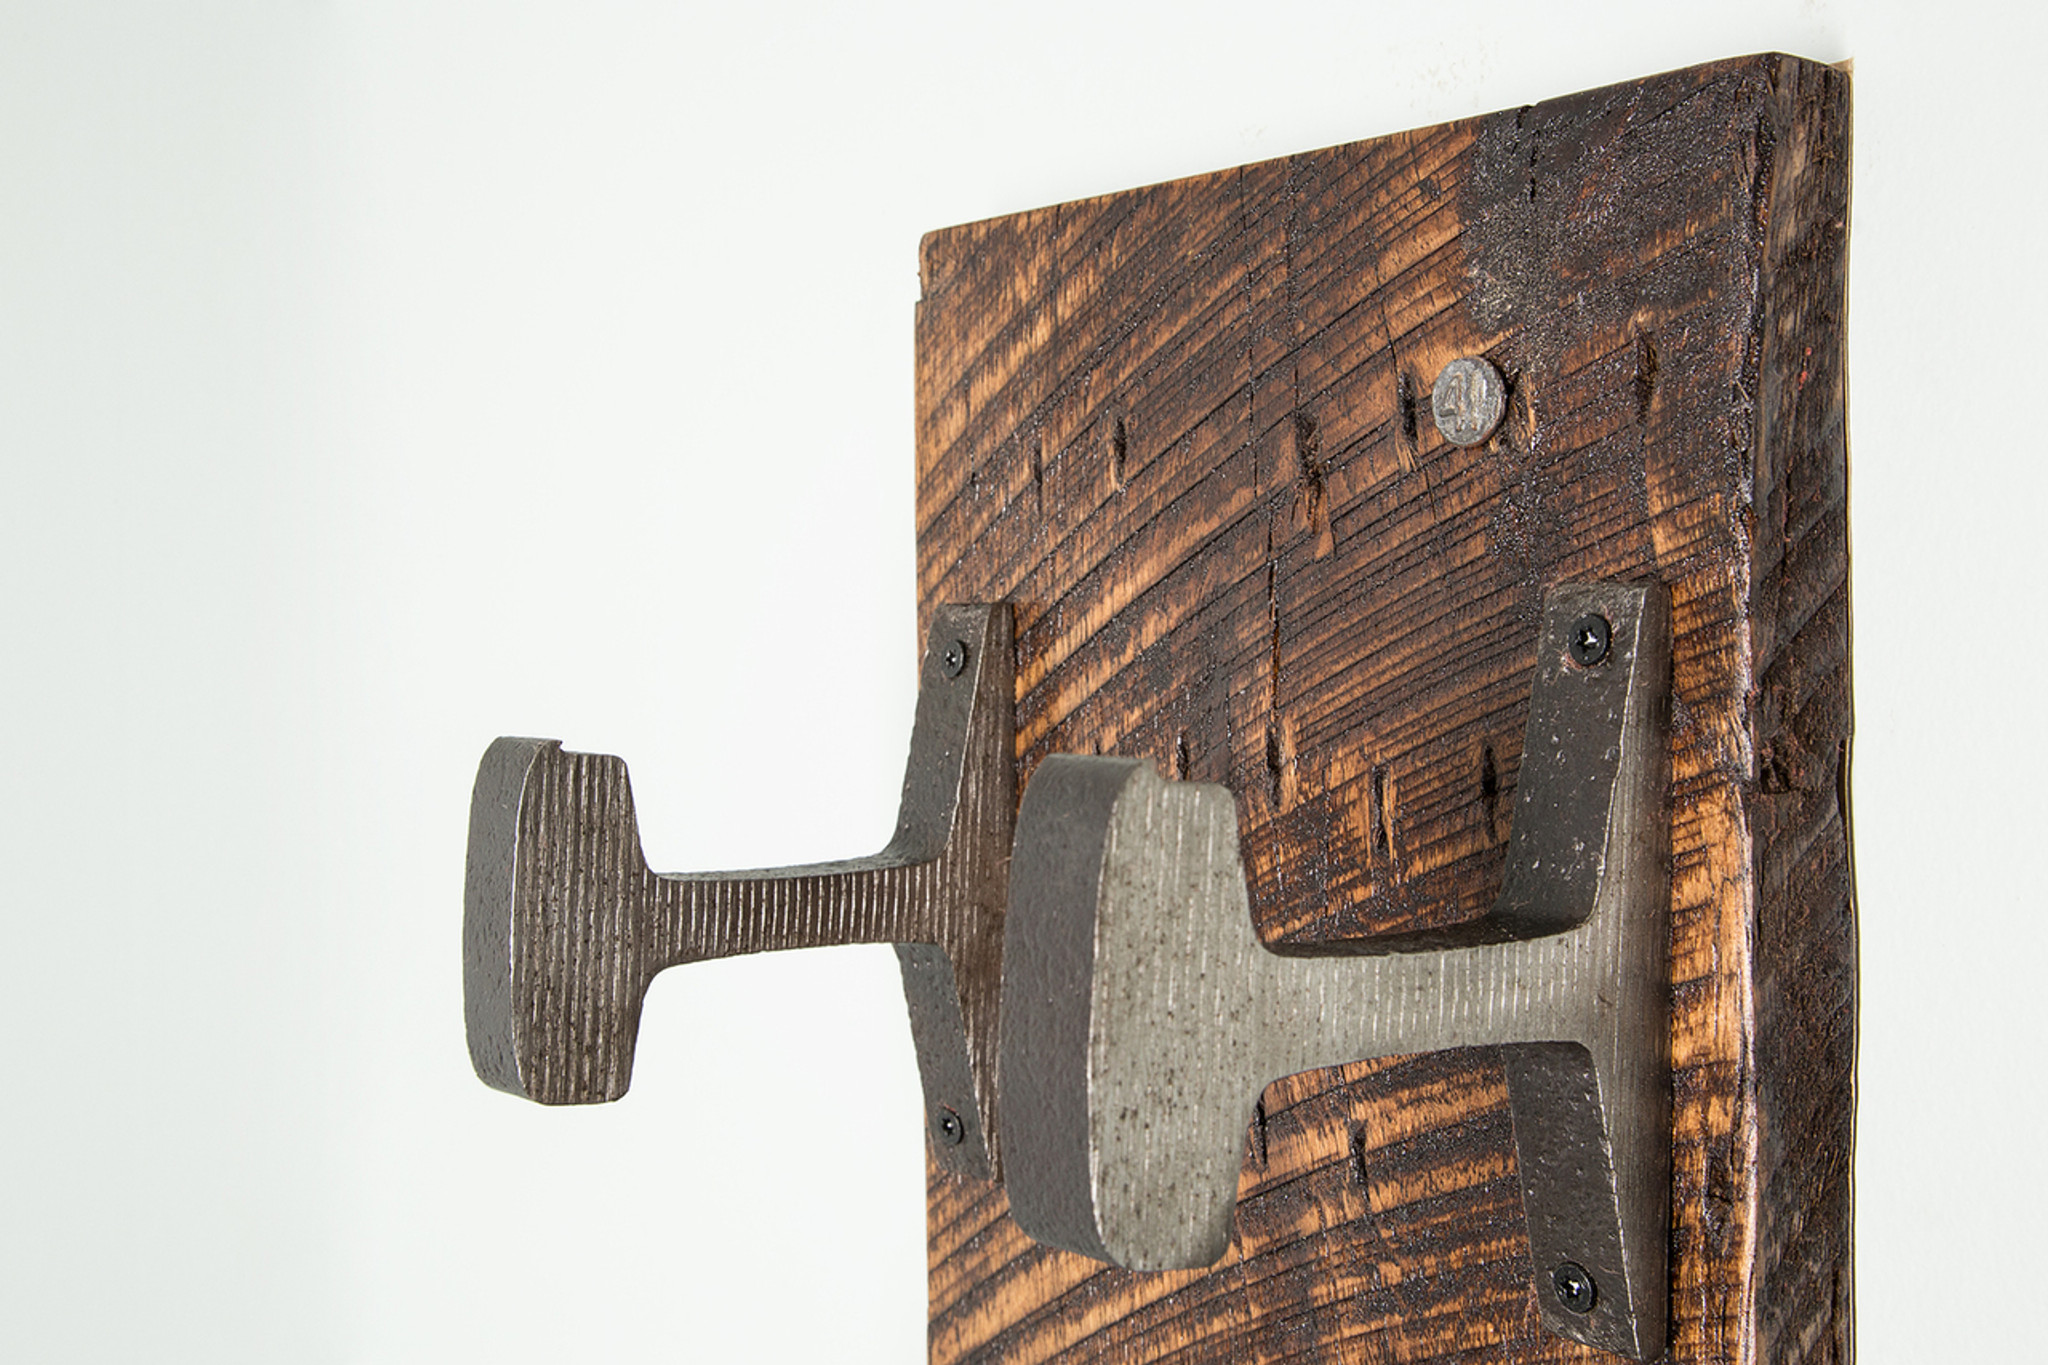 maker's mark coat rack steel hooks rough sawn wood